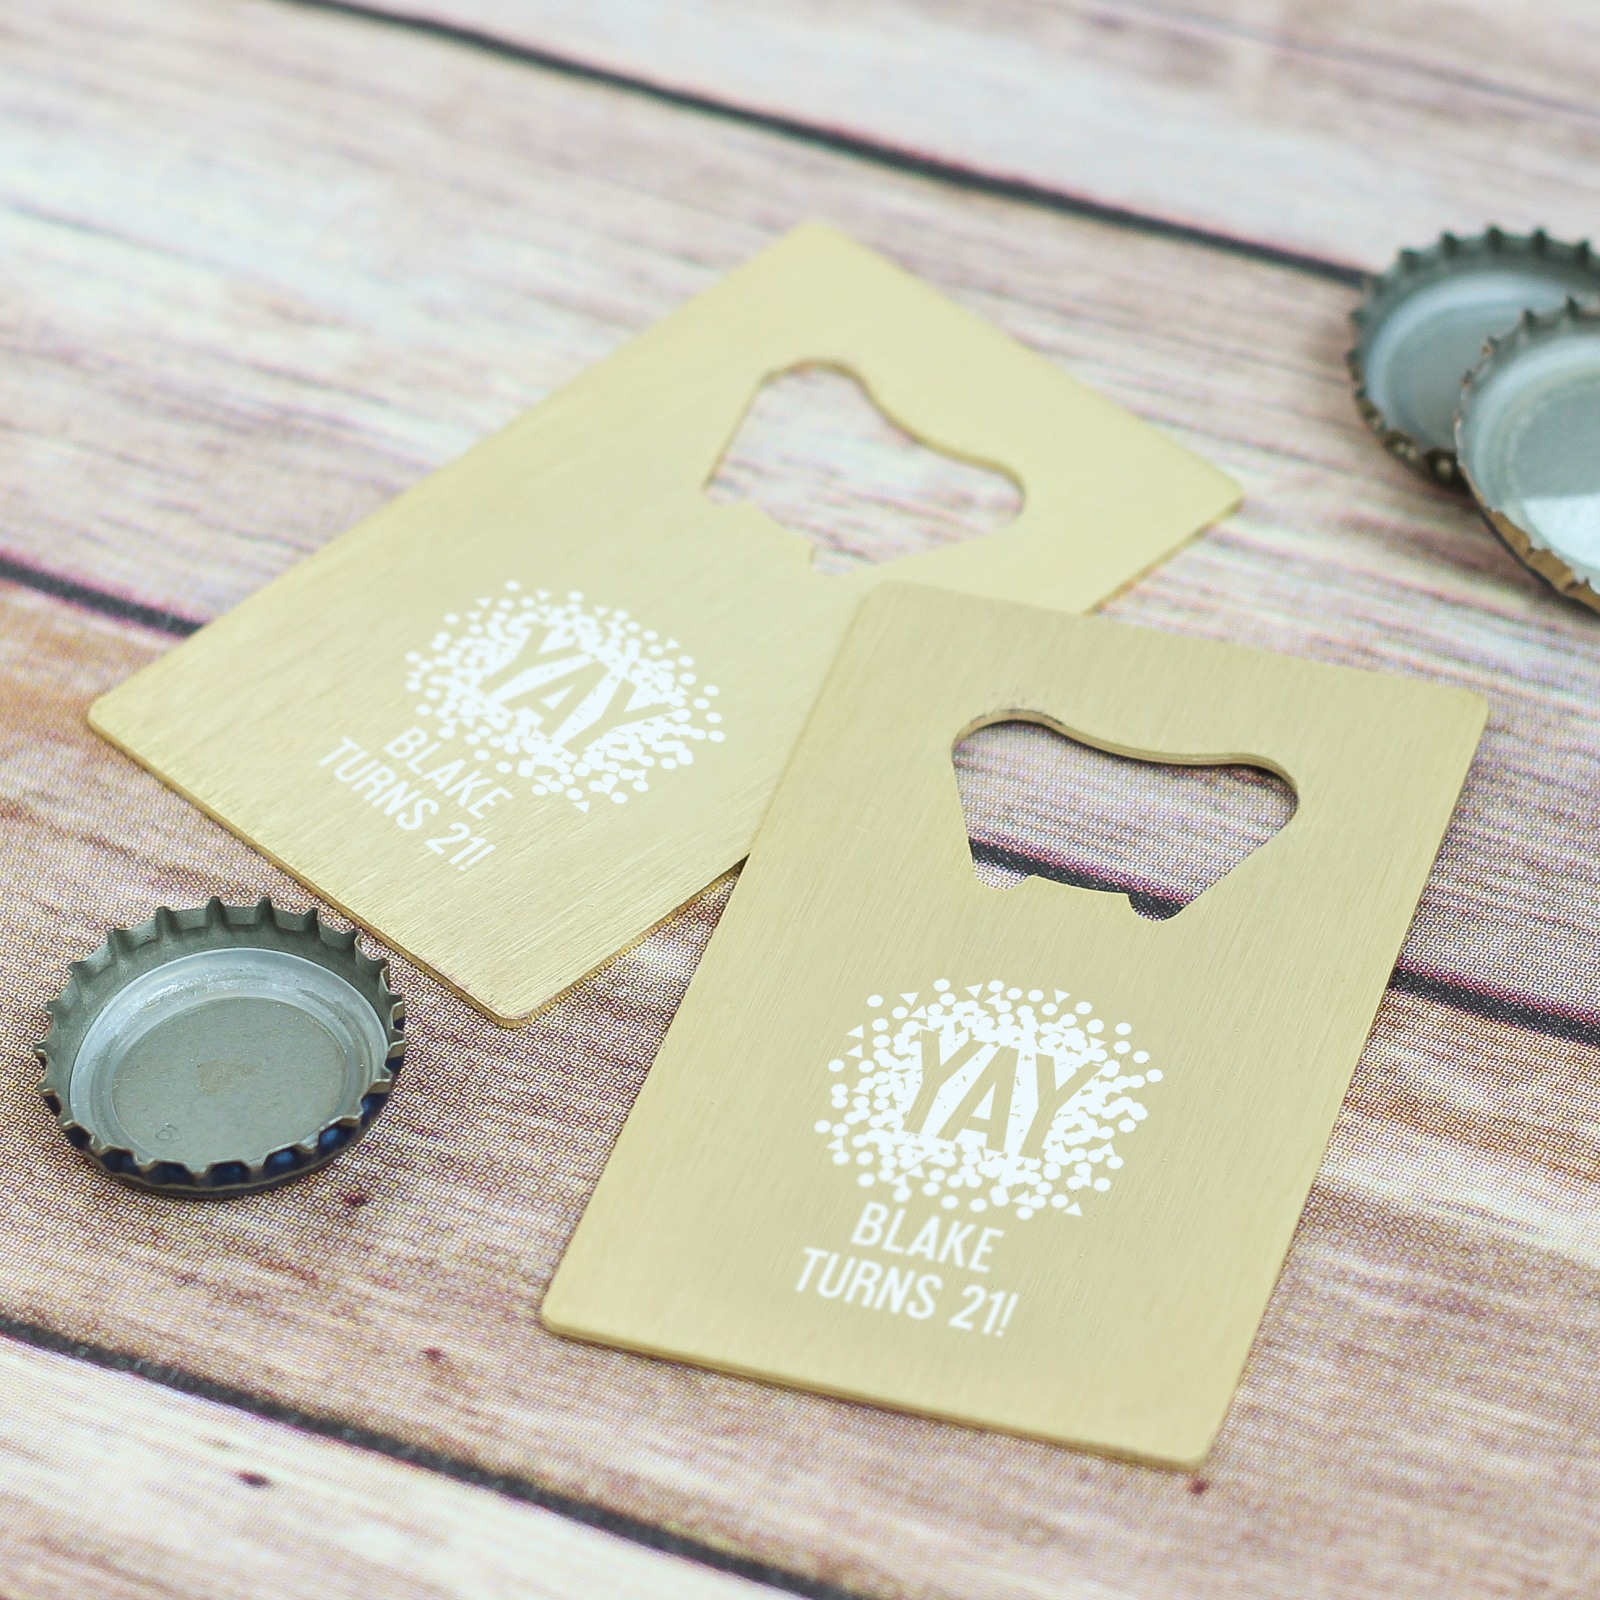 Personalized Birthday Credit Card Bottle Opener Favors 7864